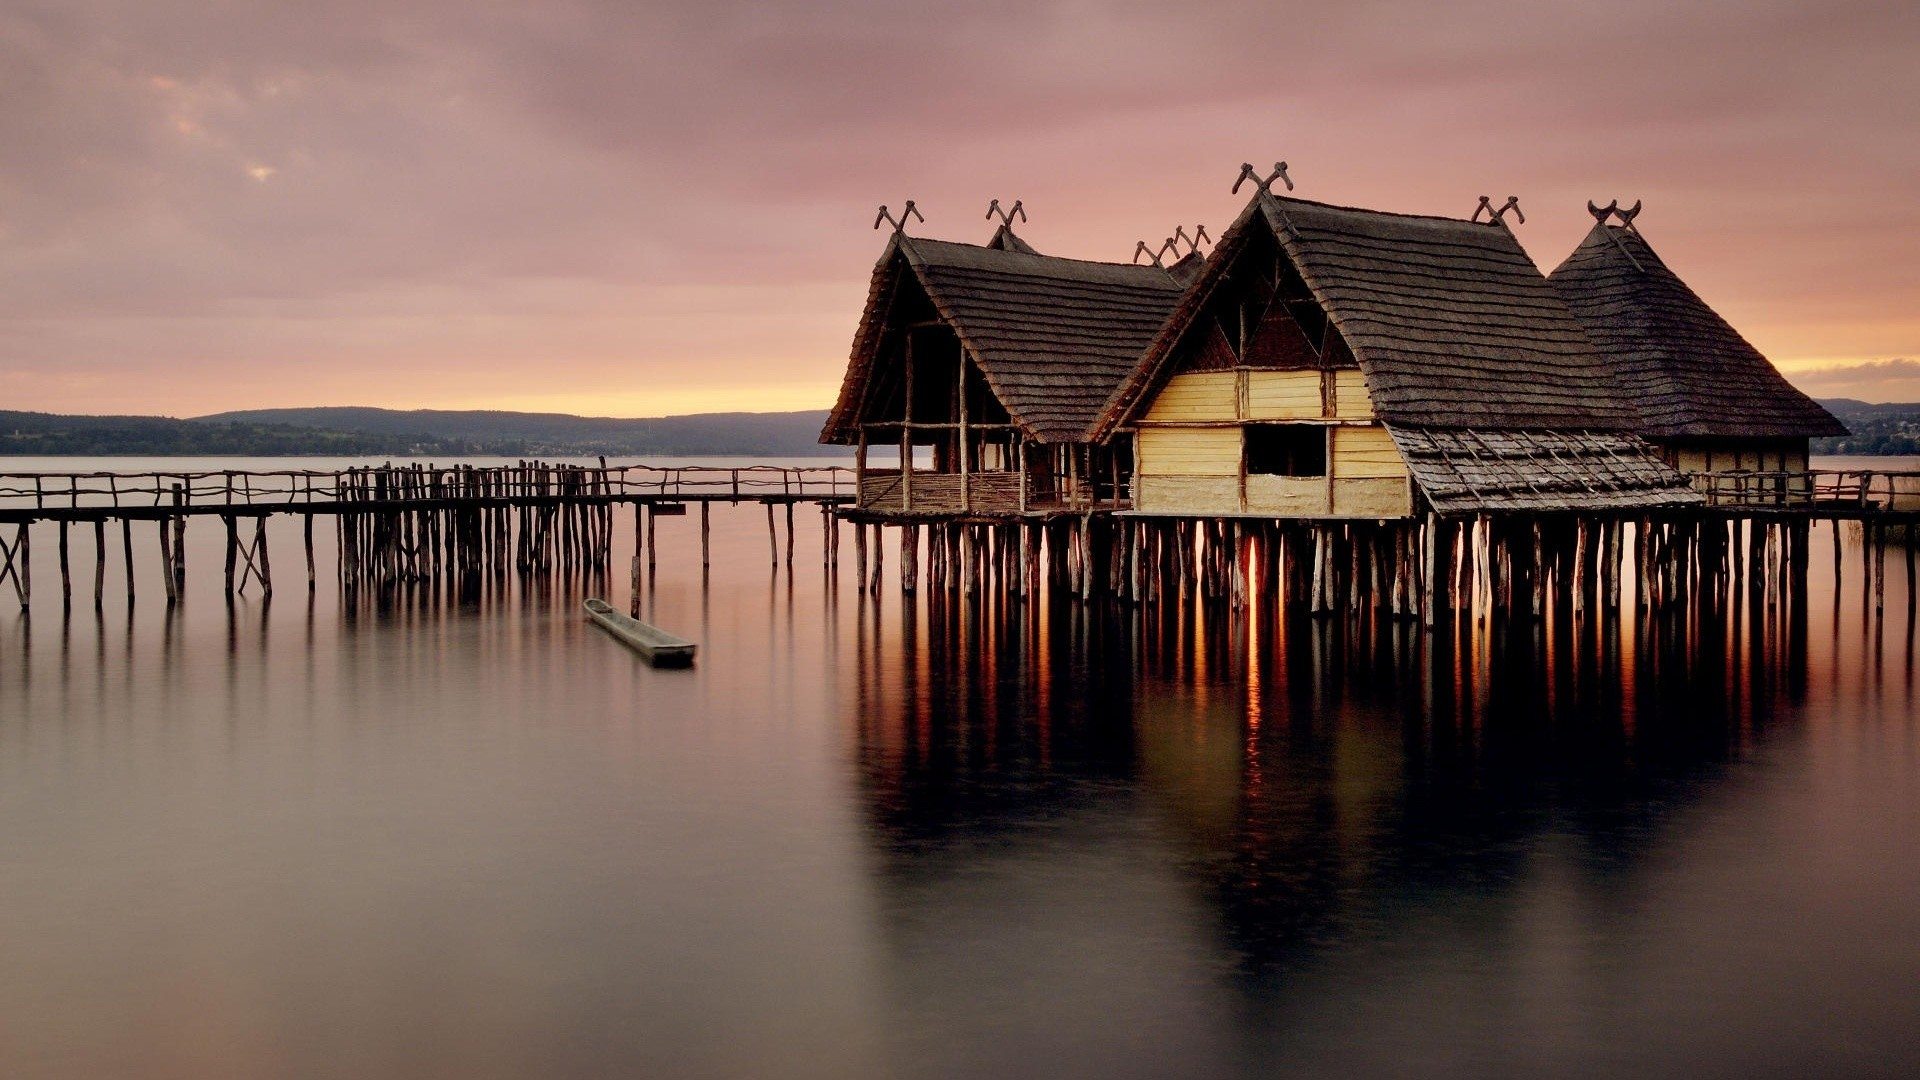 1920x1080 Lake Constance, Germany 1920 x 1080 HDTV 1080p wallpaper